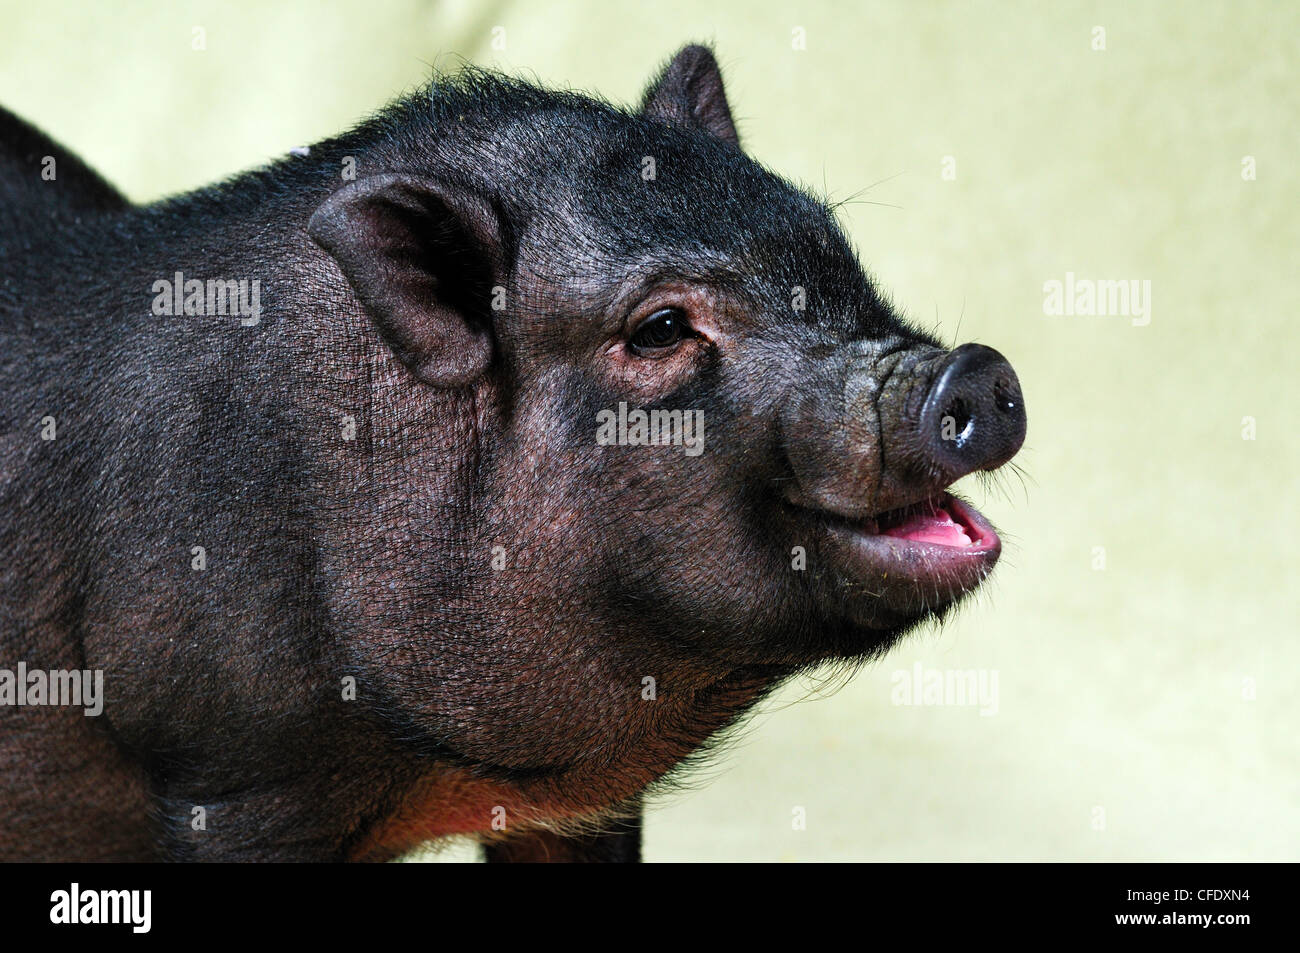 A 12 week old Pot Belly Pig, Duncan, Vancouver Island, British Columbia, Canada - Stock Image